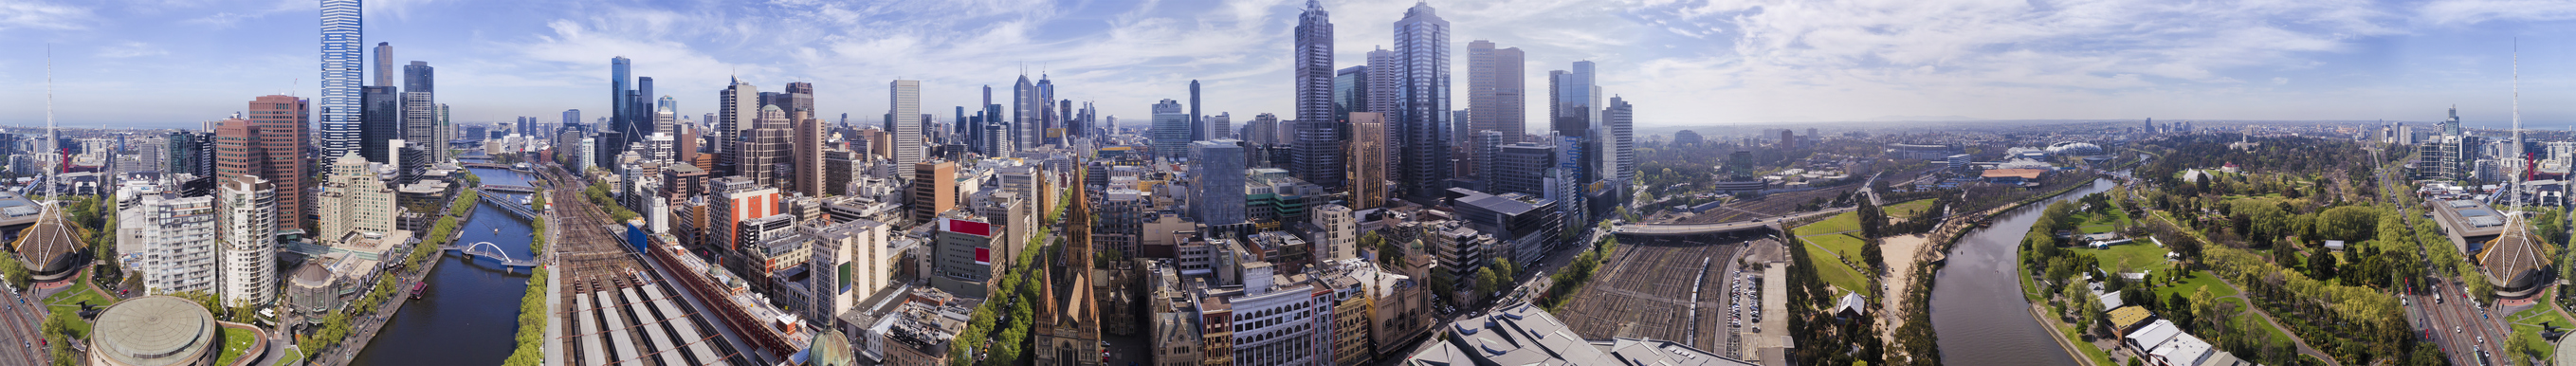 Melbourne panoramic